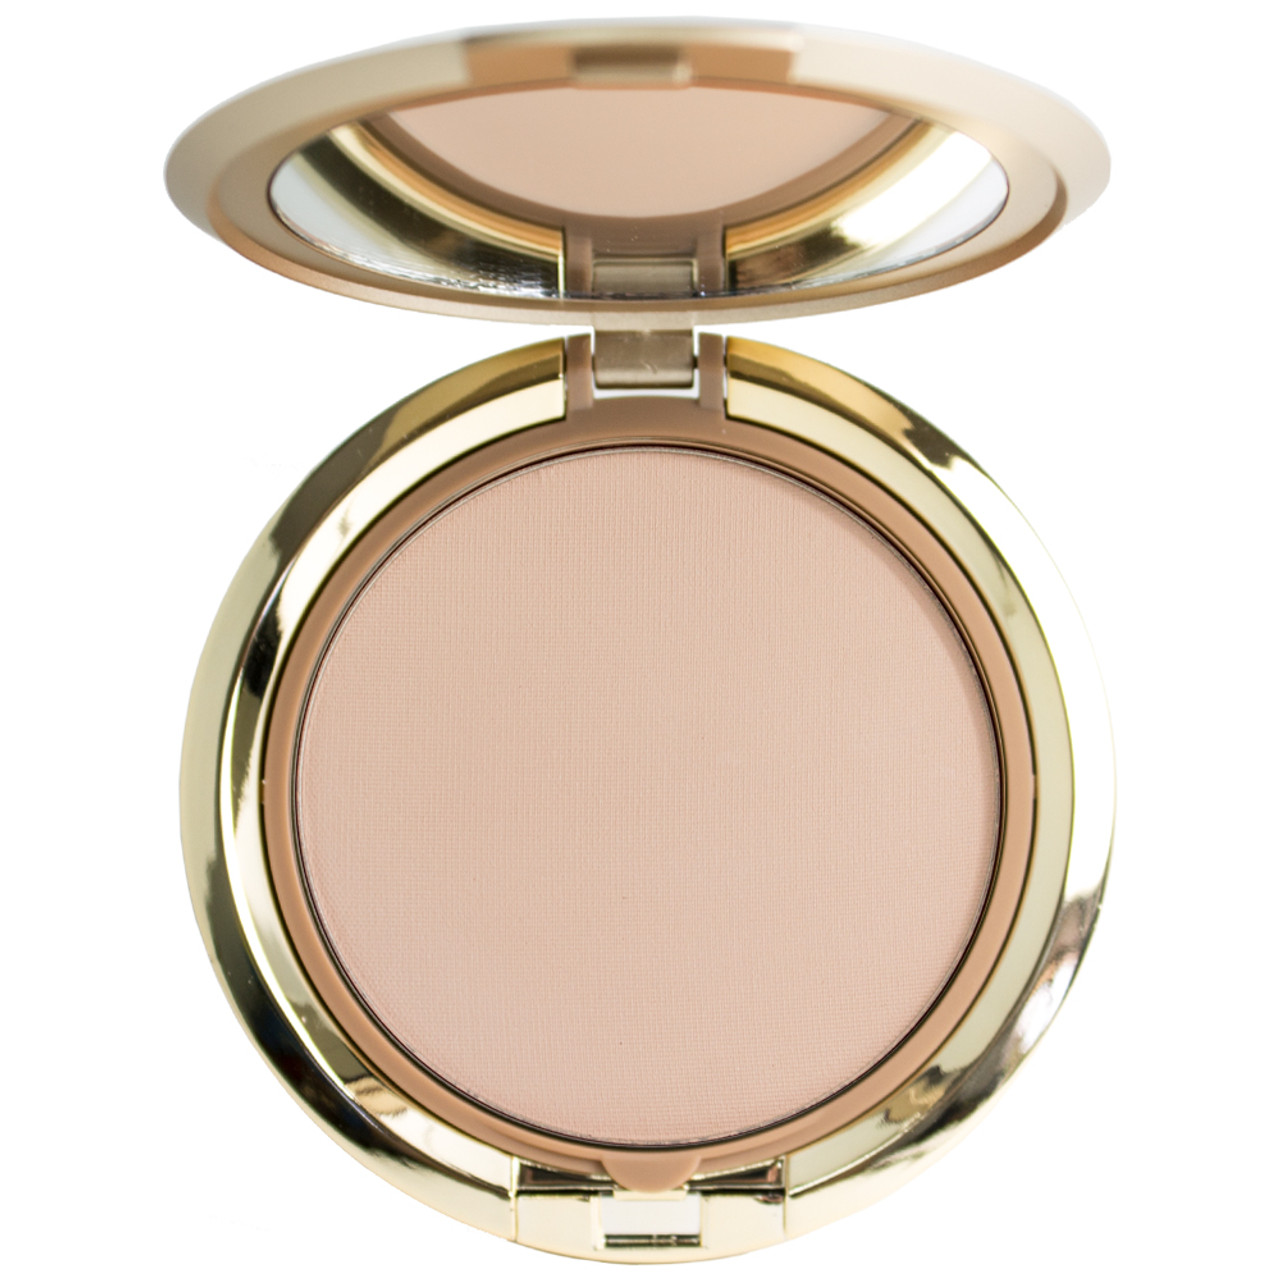 Milani Even Touch Powder Foundation Buymebeauty Com